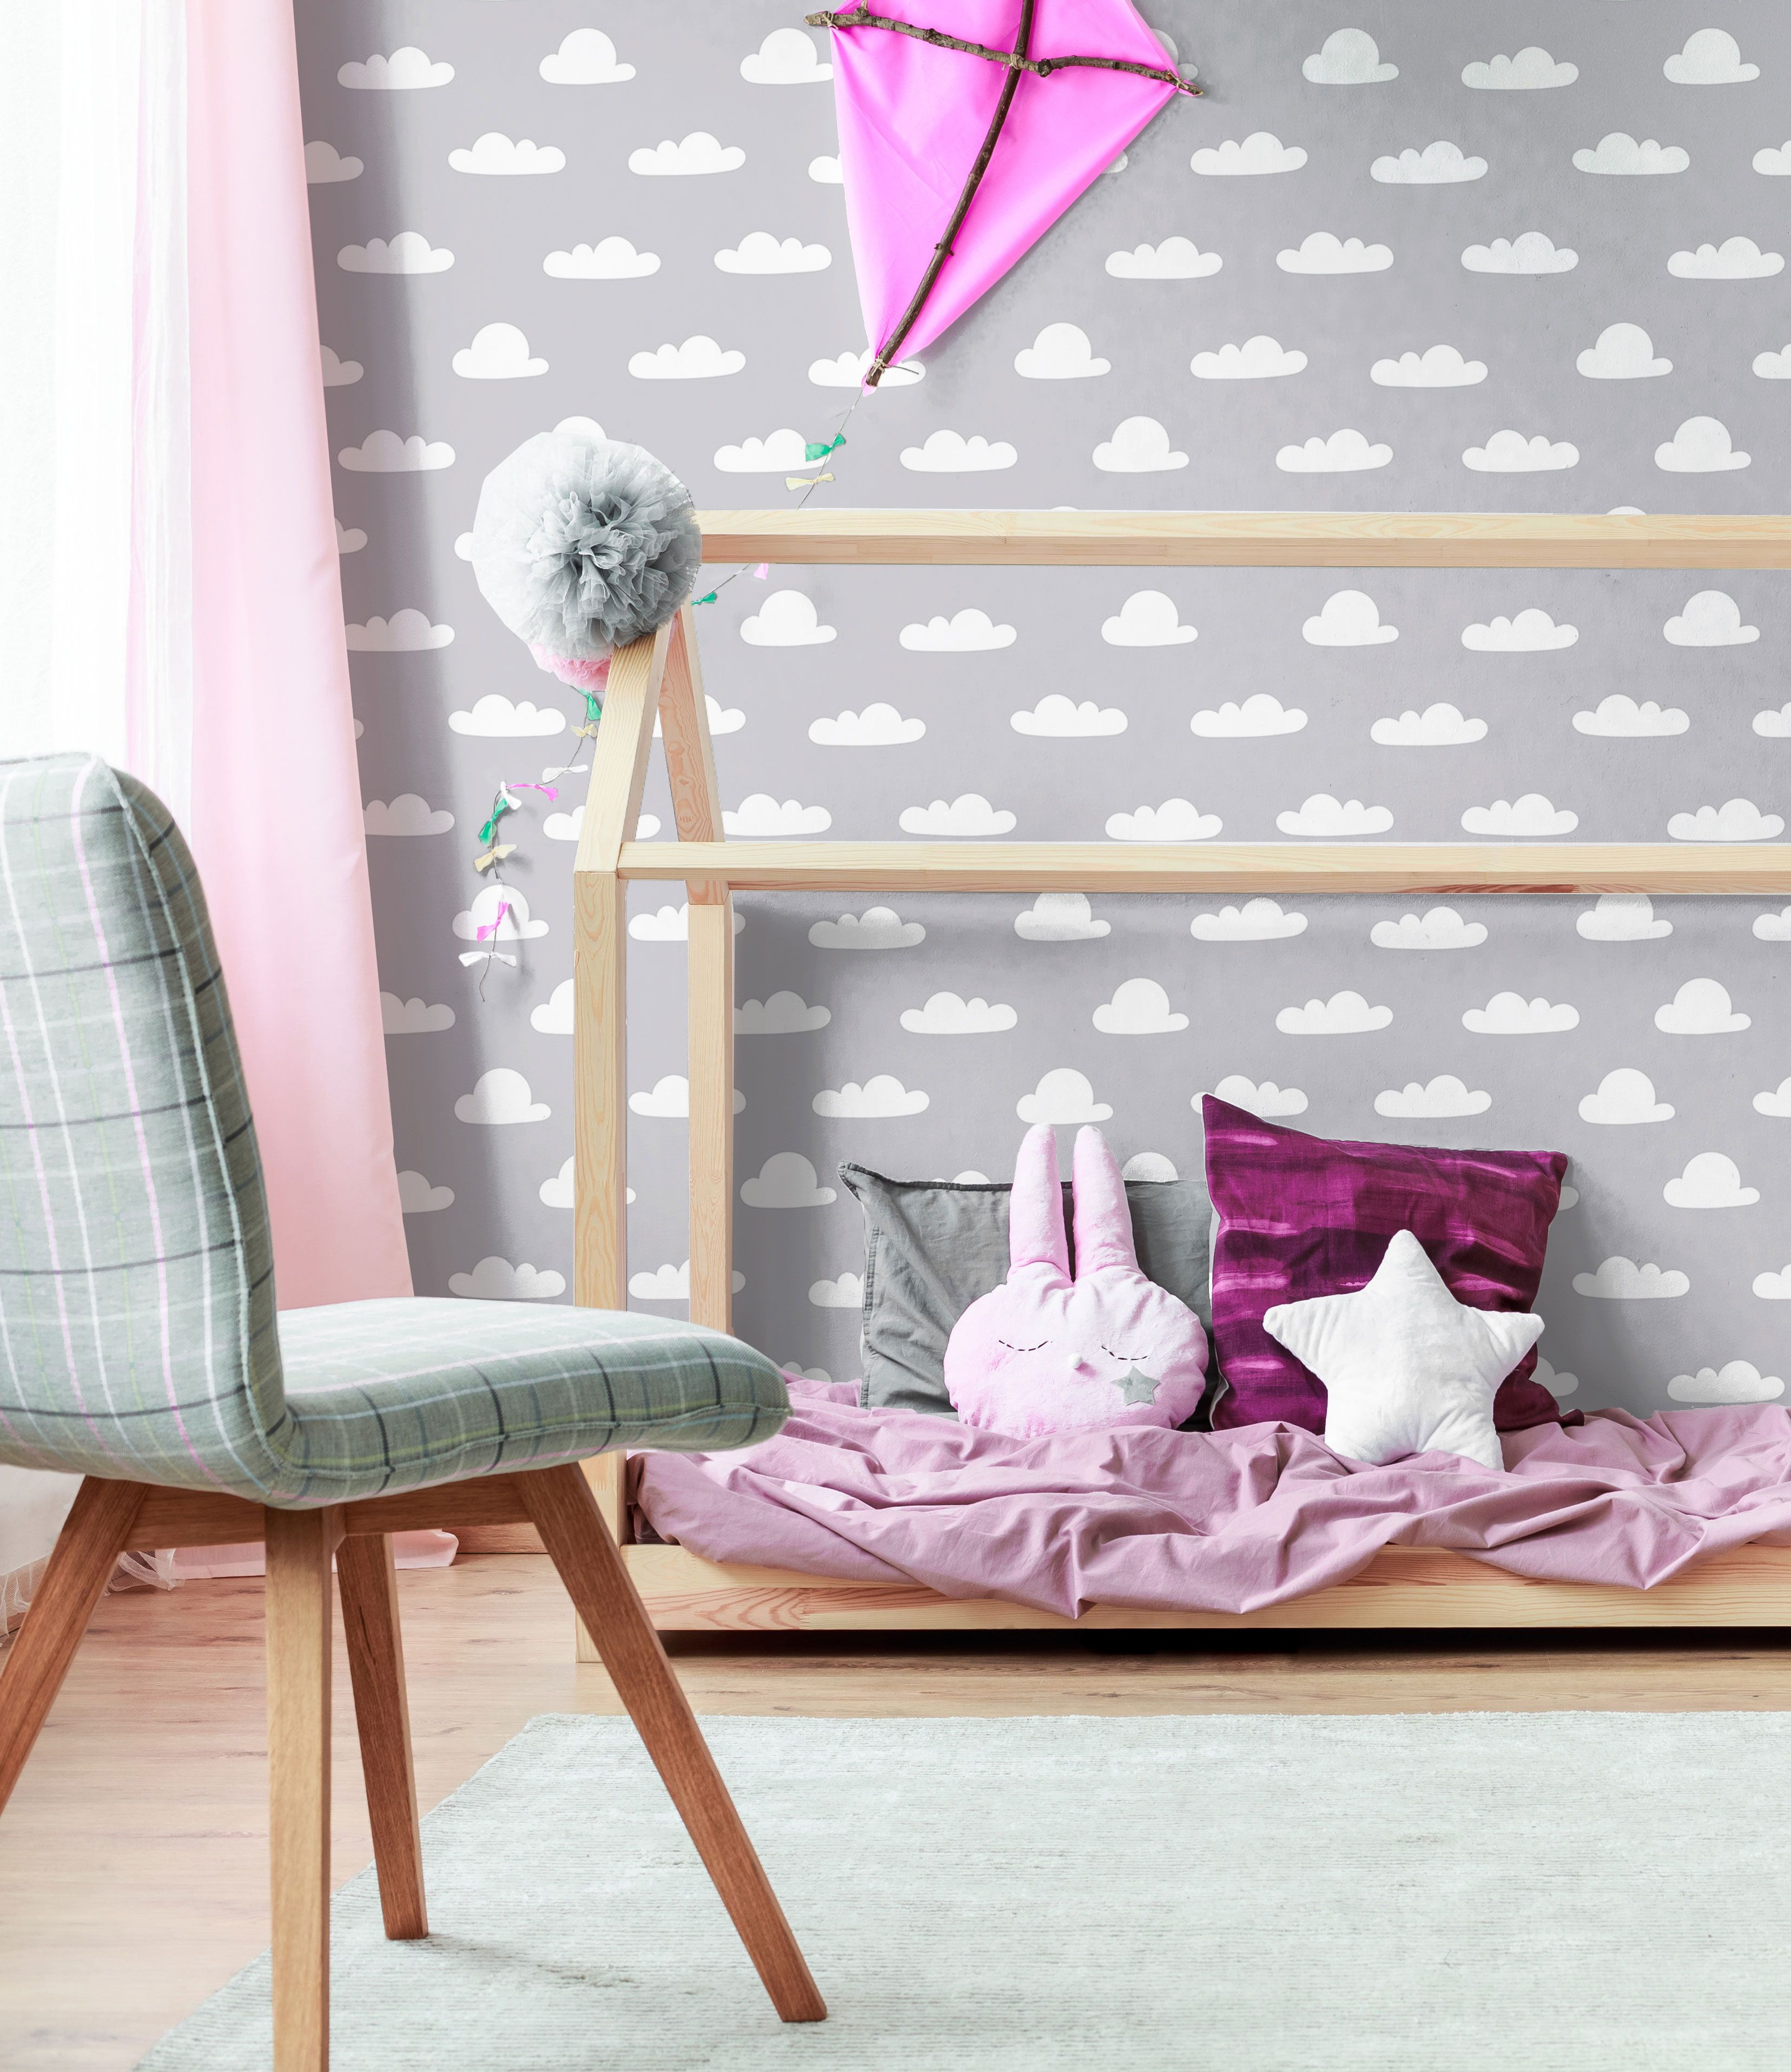 Creating A Light And Airy Space White And Silver Clouds Baby Fabric Removable Wallpaper In 2020 Baby Fabric Peel And Stick Wallpaper Removable Wallpaper